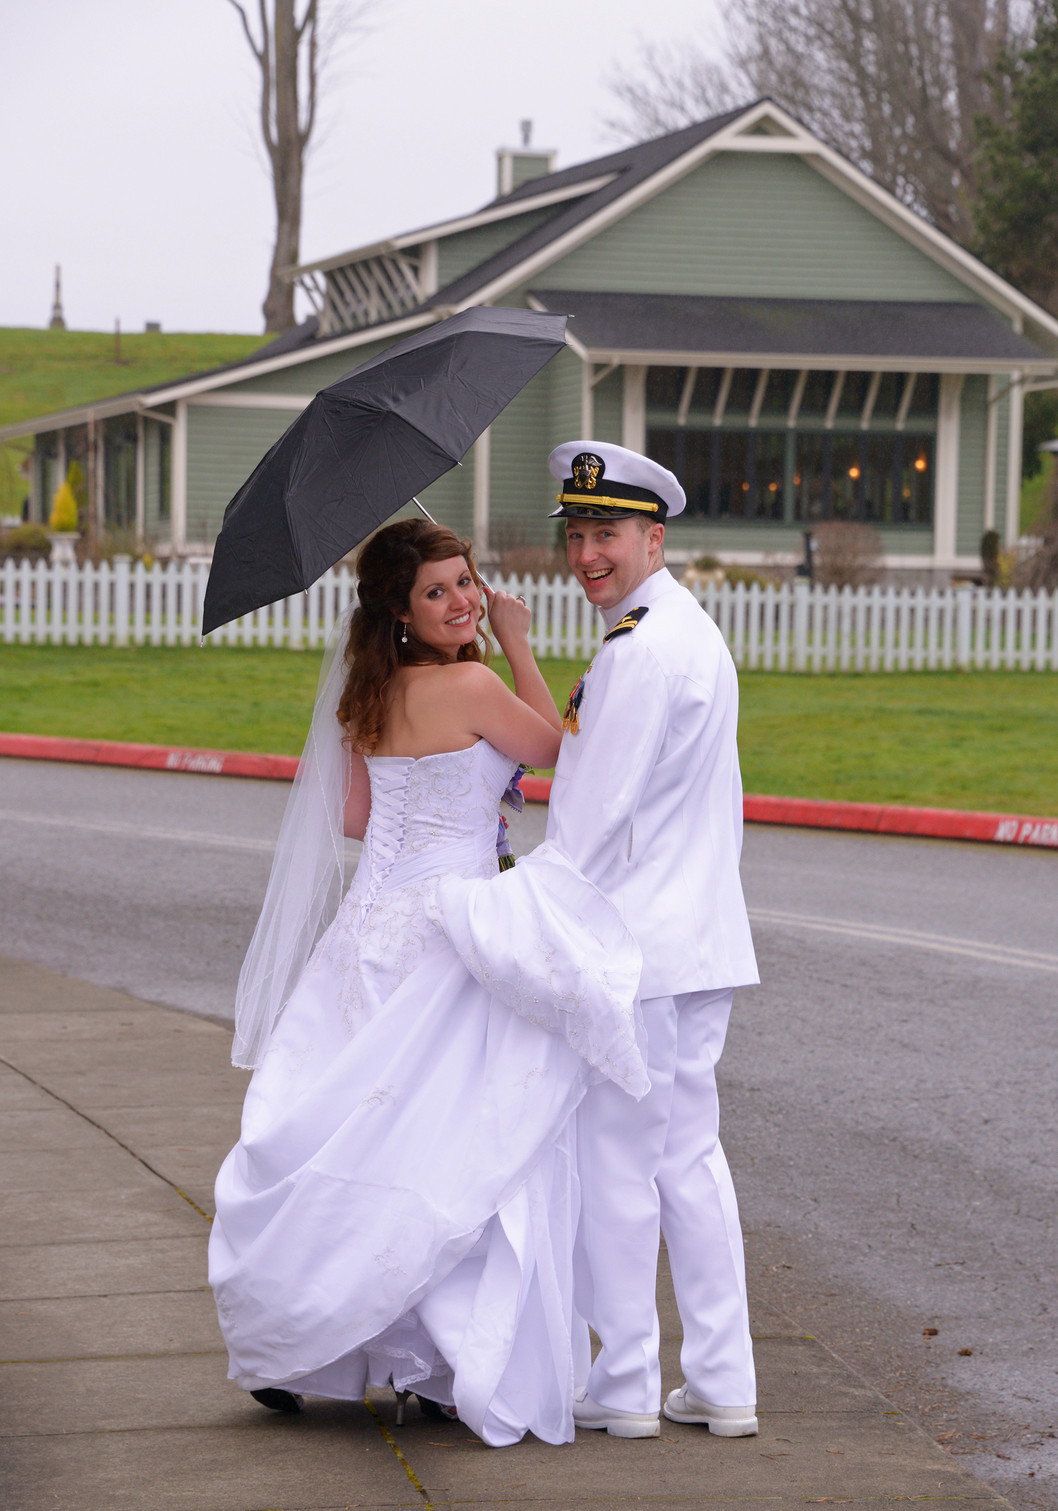 Making the Most of Your Spring Wedding